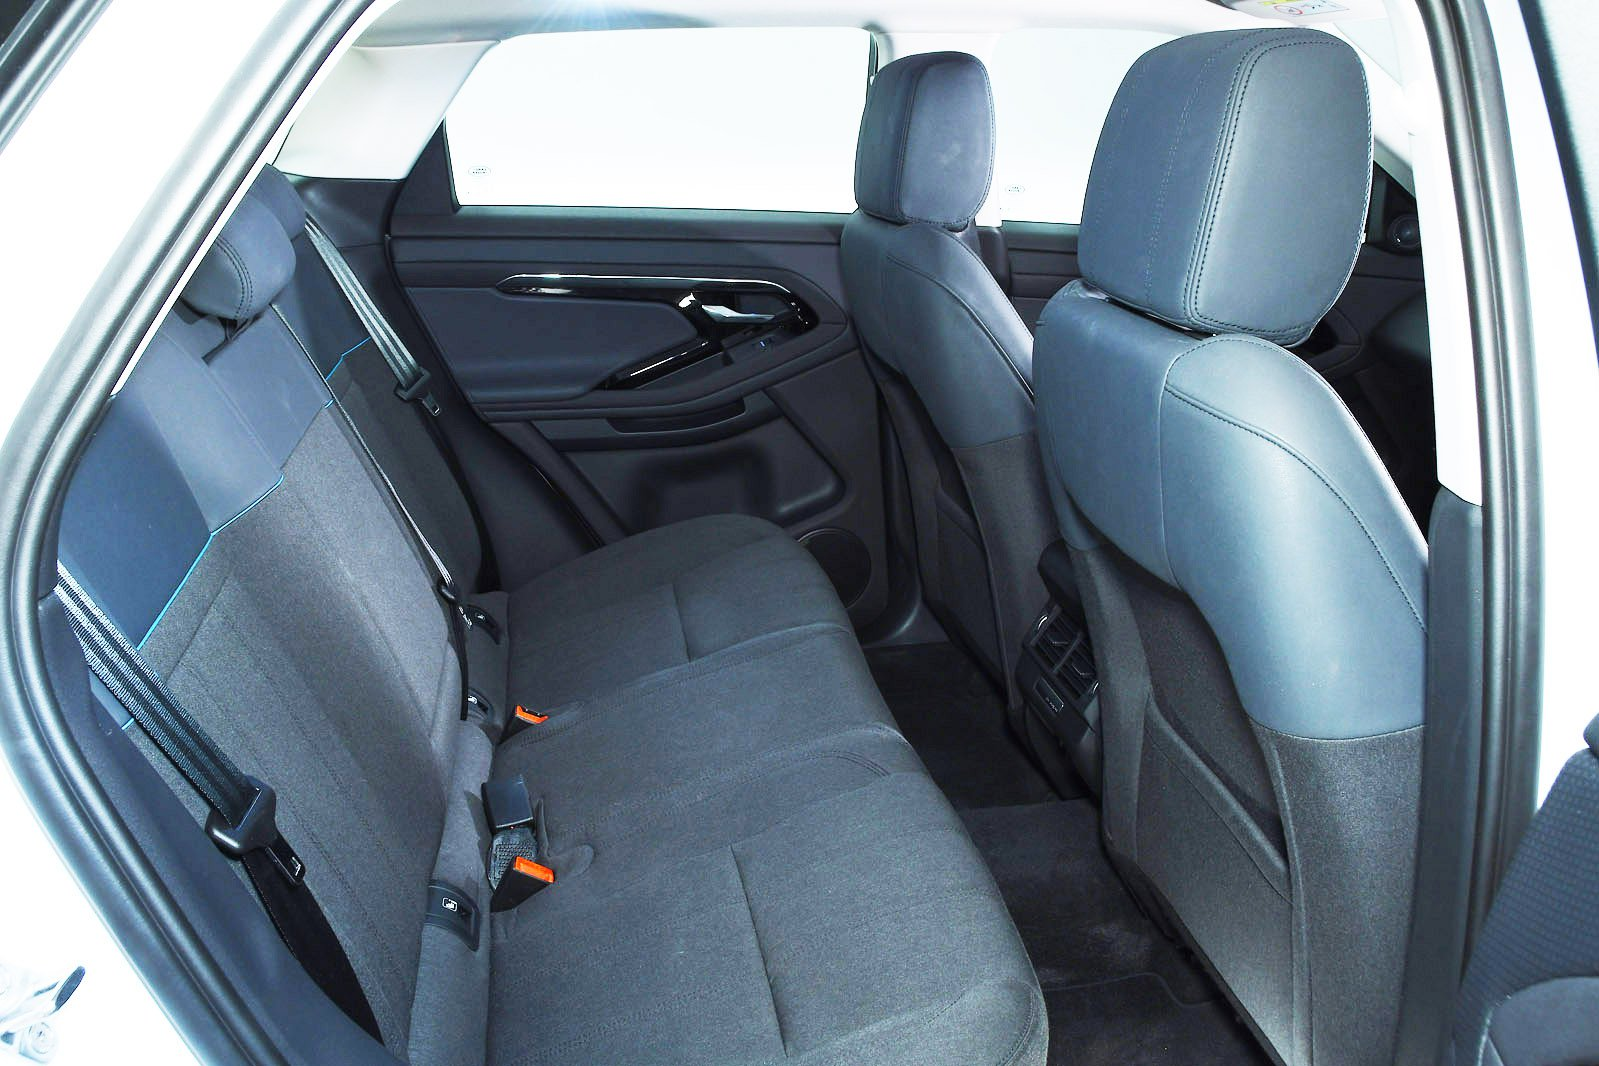 Range Rover Evoque 2020 rear seats